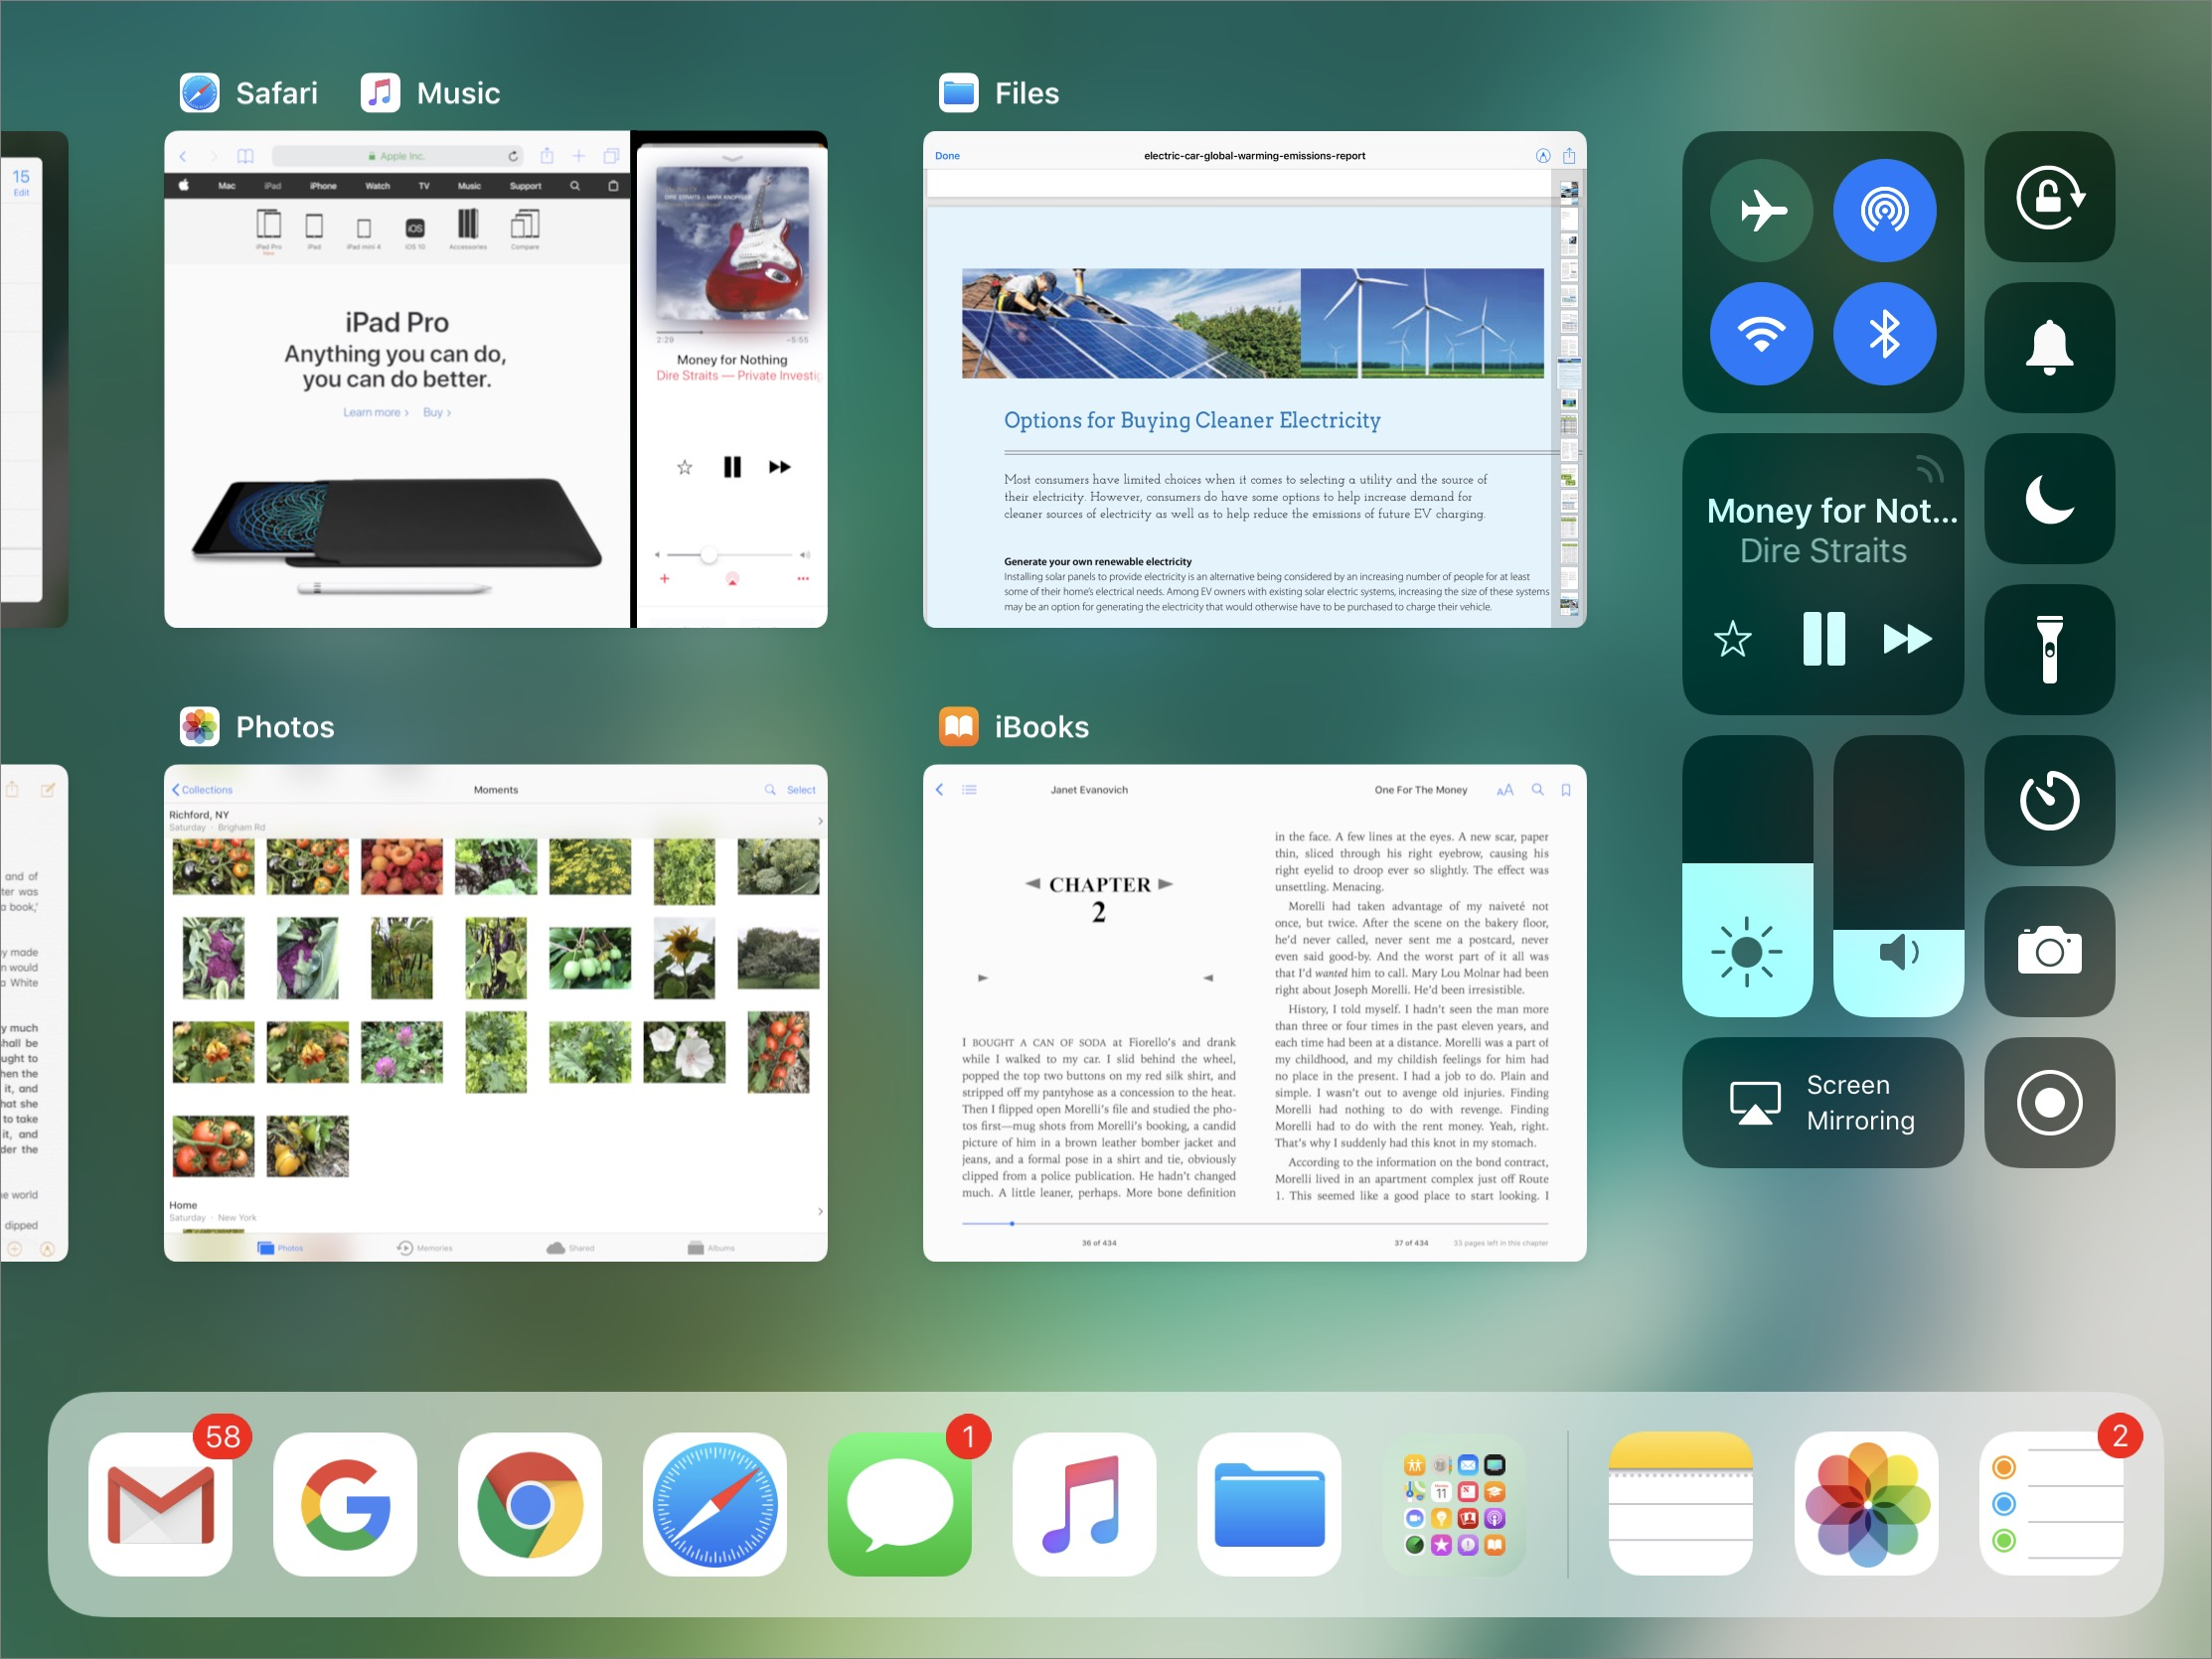 iOS11-iPad-App-Switcher2.jpg